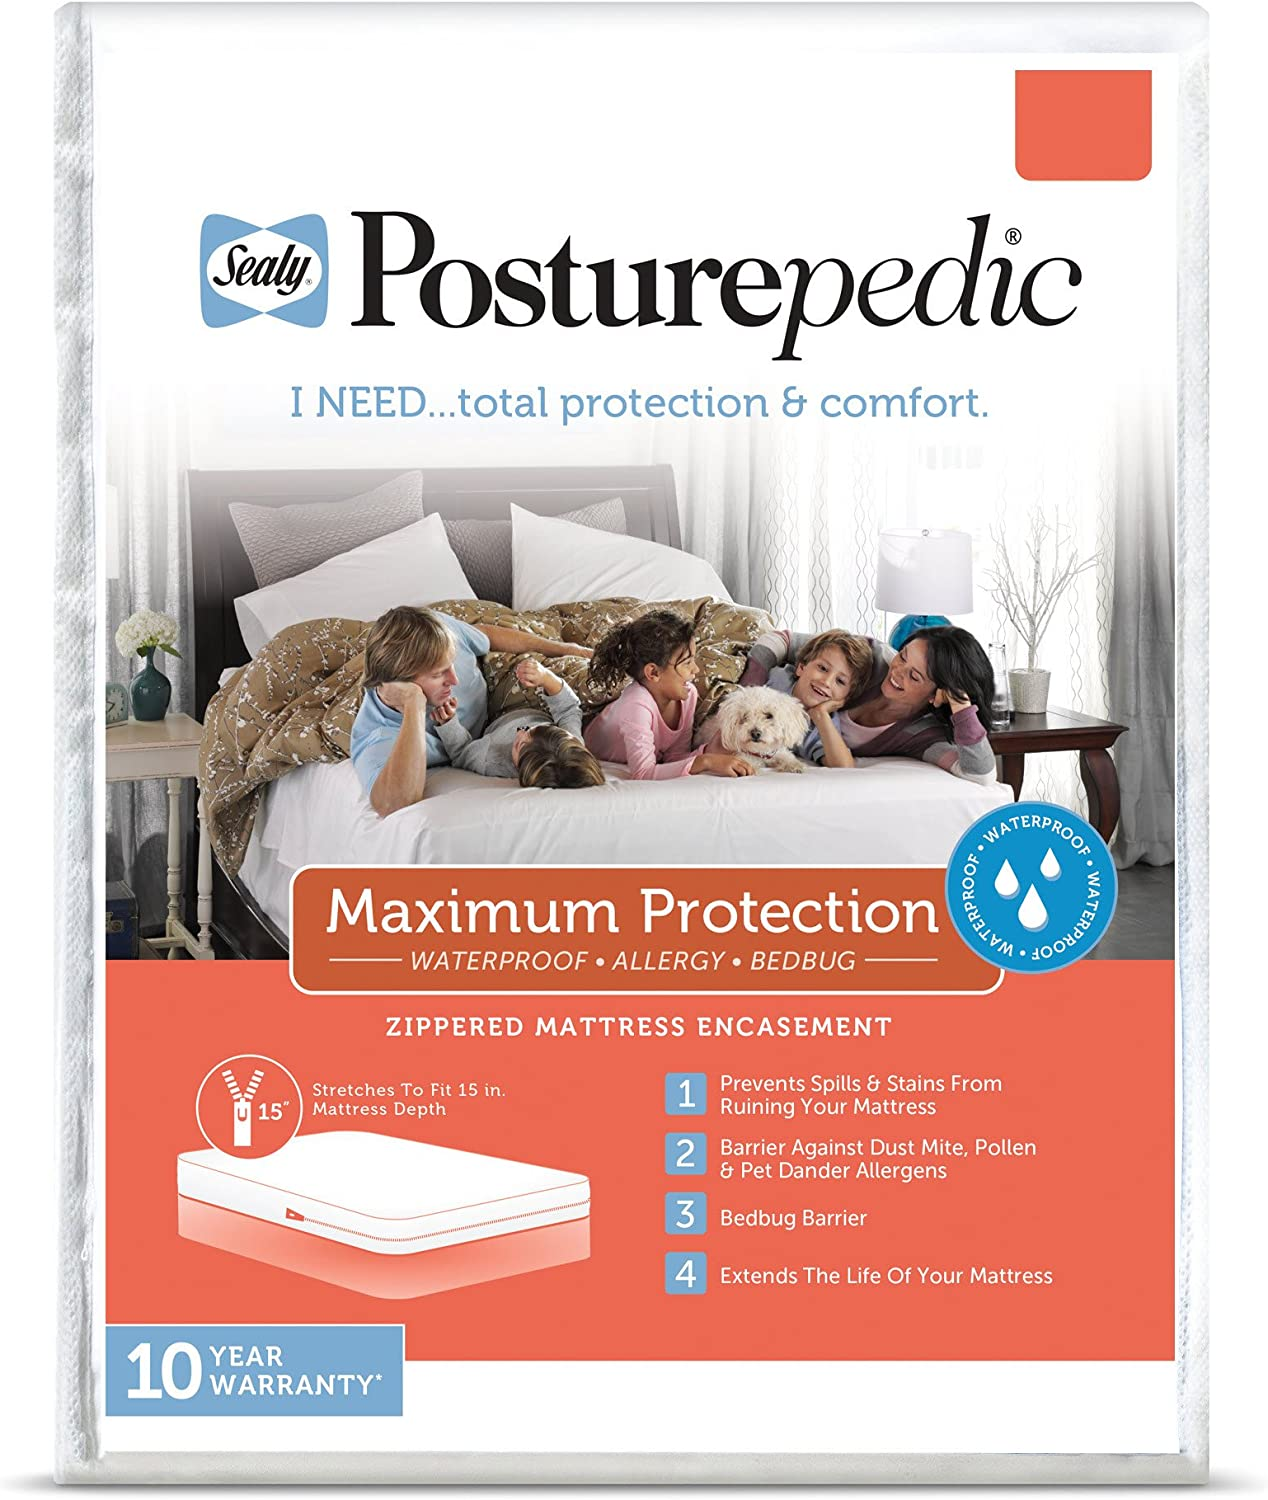 Sealy Posturepedic Maximum Protection Waterproof, Bedbug Zippered Mattress Protector - Prevent Collection of Dust Mites & Other Allergens - Vinyl Free & Hypoallergenic - 10 Year Warranty, Queen Sized